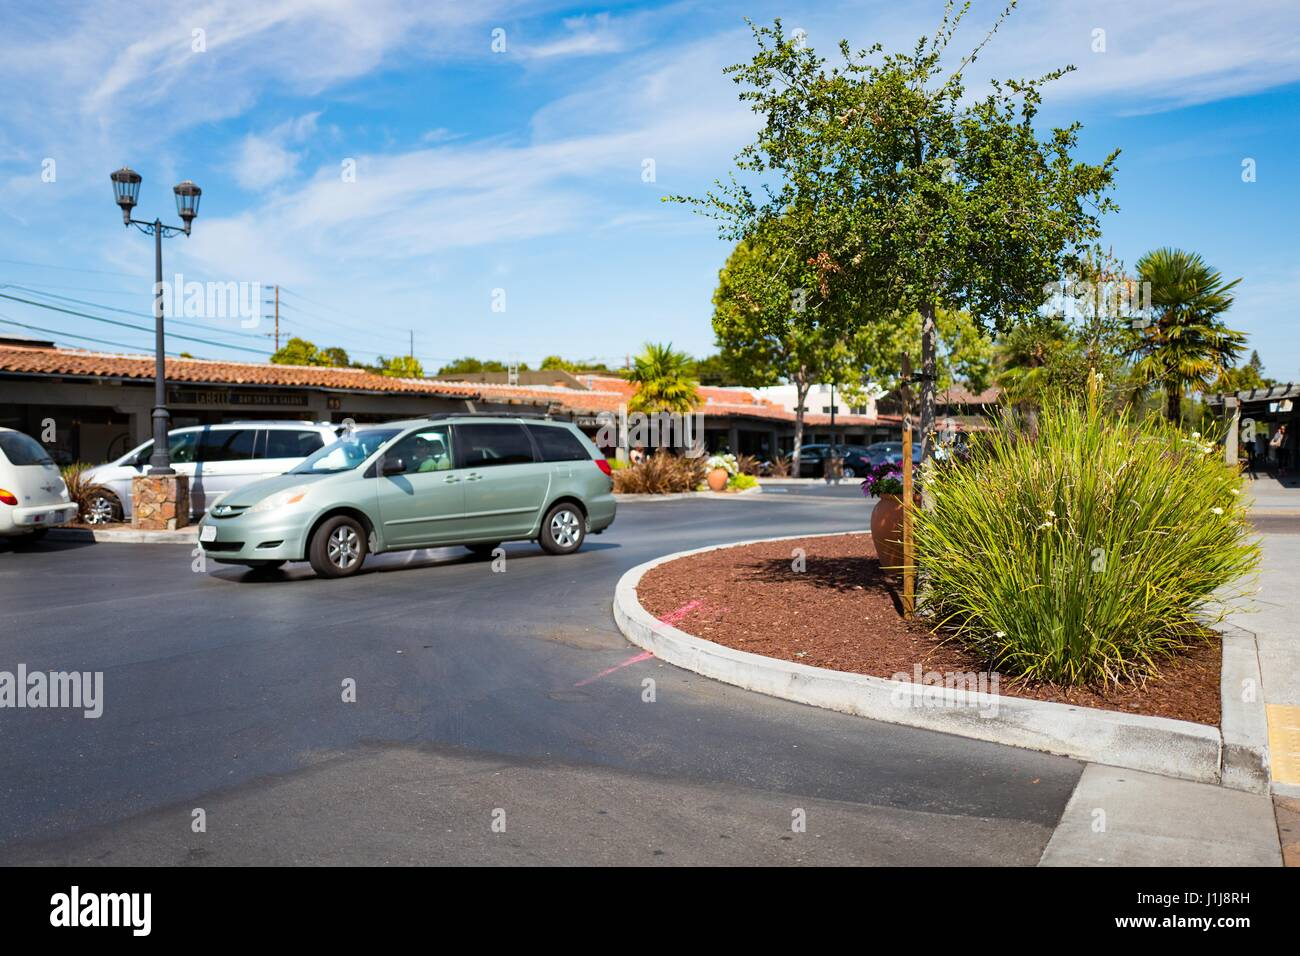 A minivan passes through the parking lot at the Town and Country Shopping Center in the Silicon Valley town of Palo - Stock Image